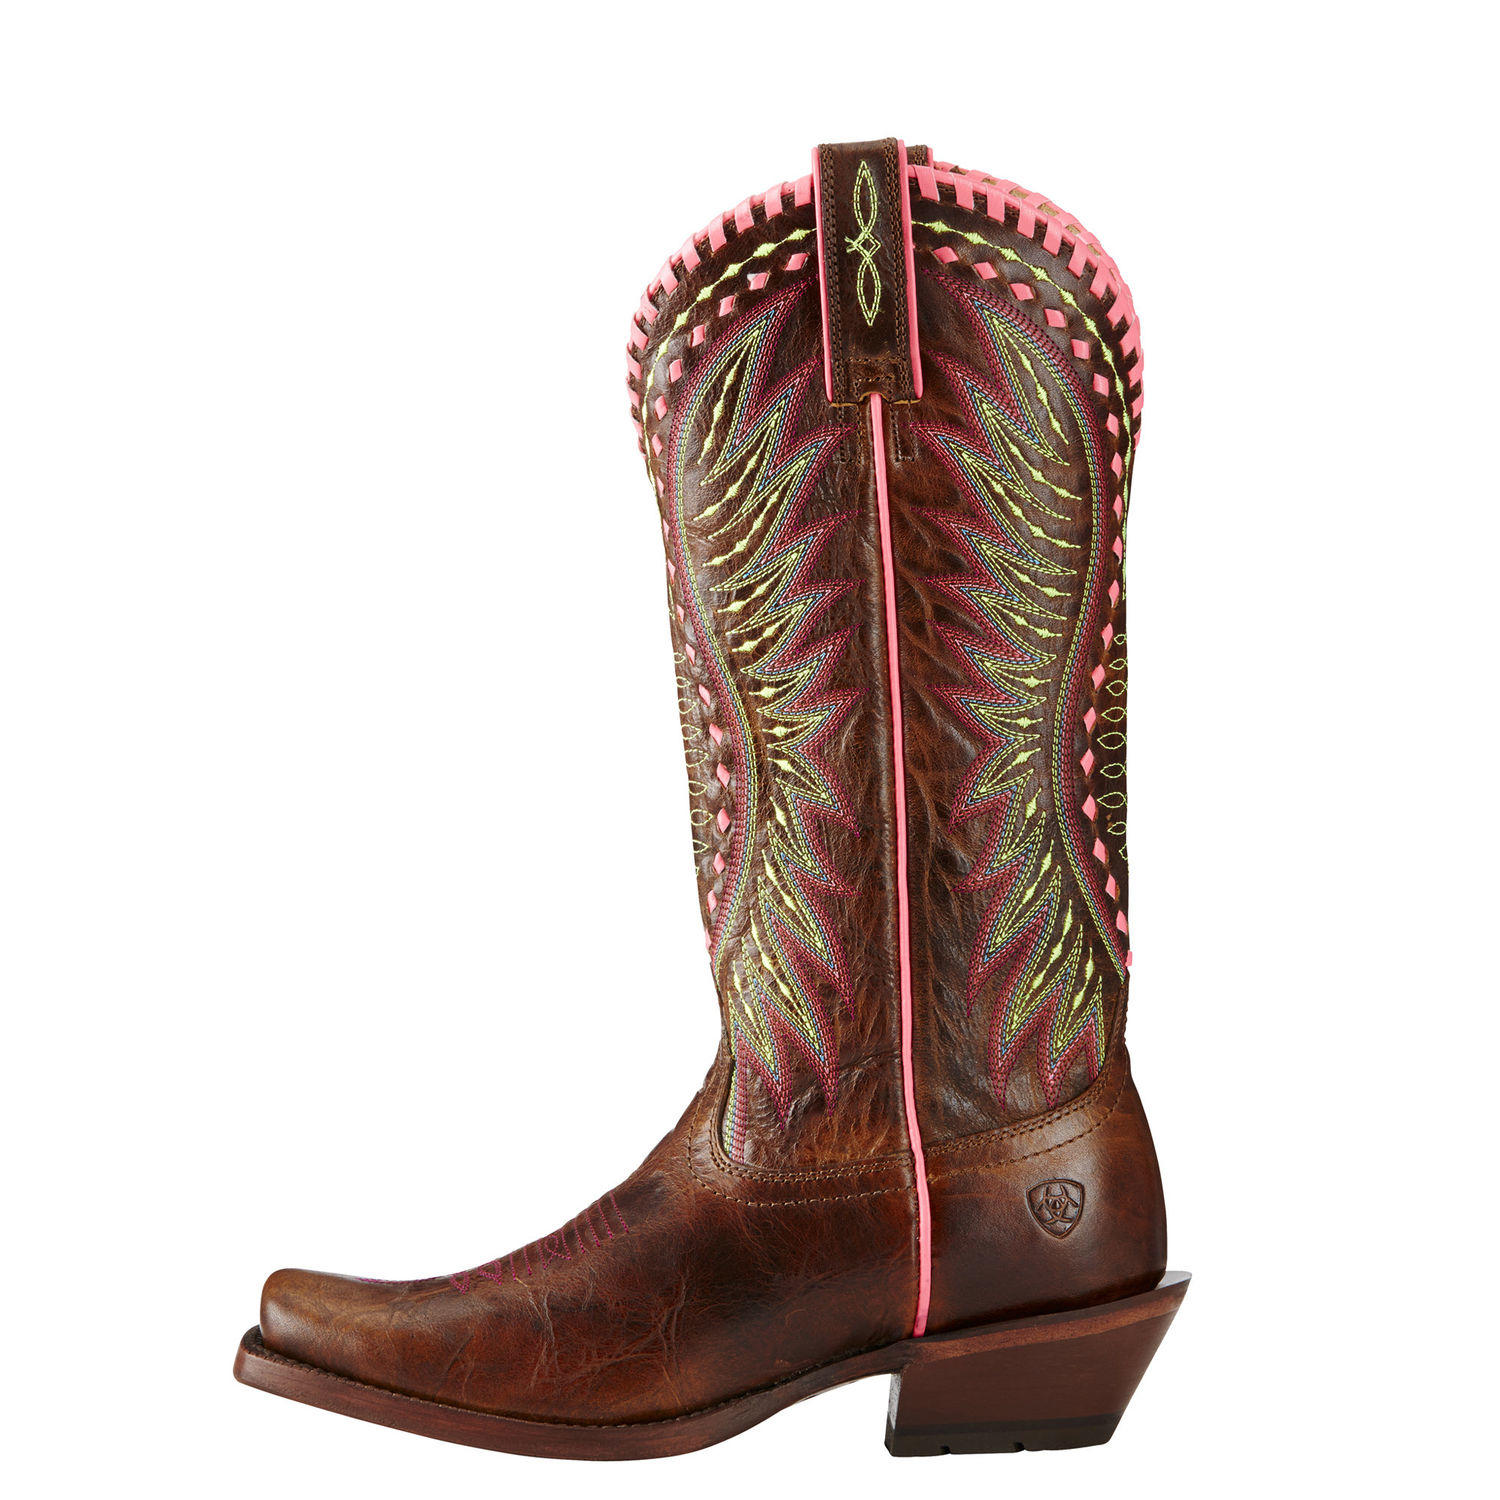 Ladies western riding fashion boot Derby STYLE # 10019936 side view